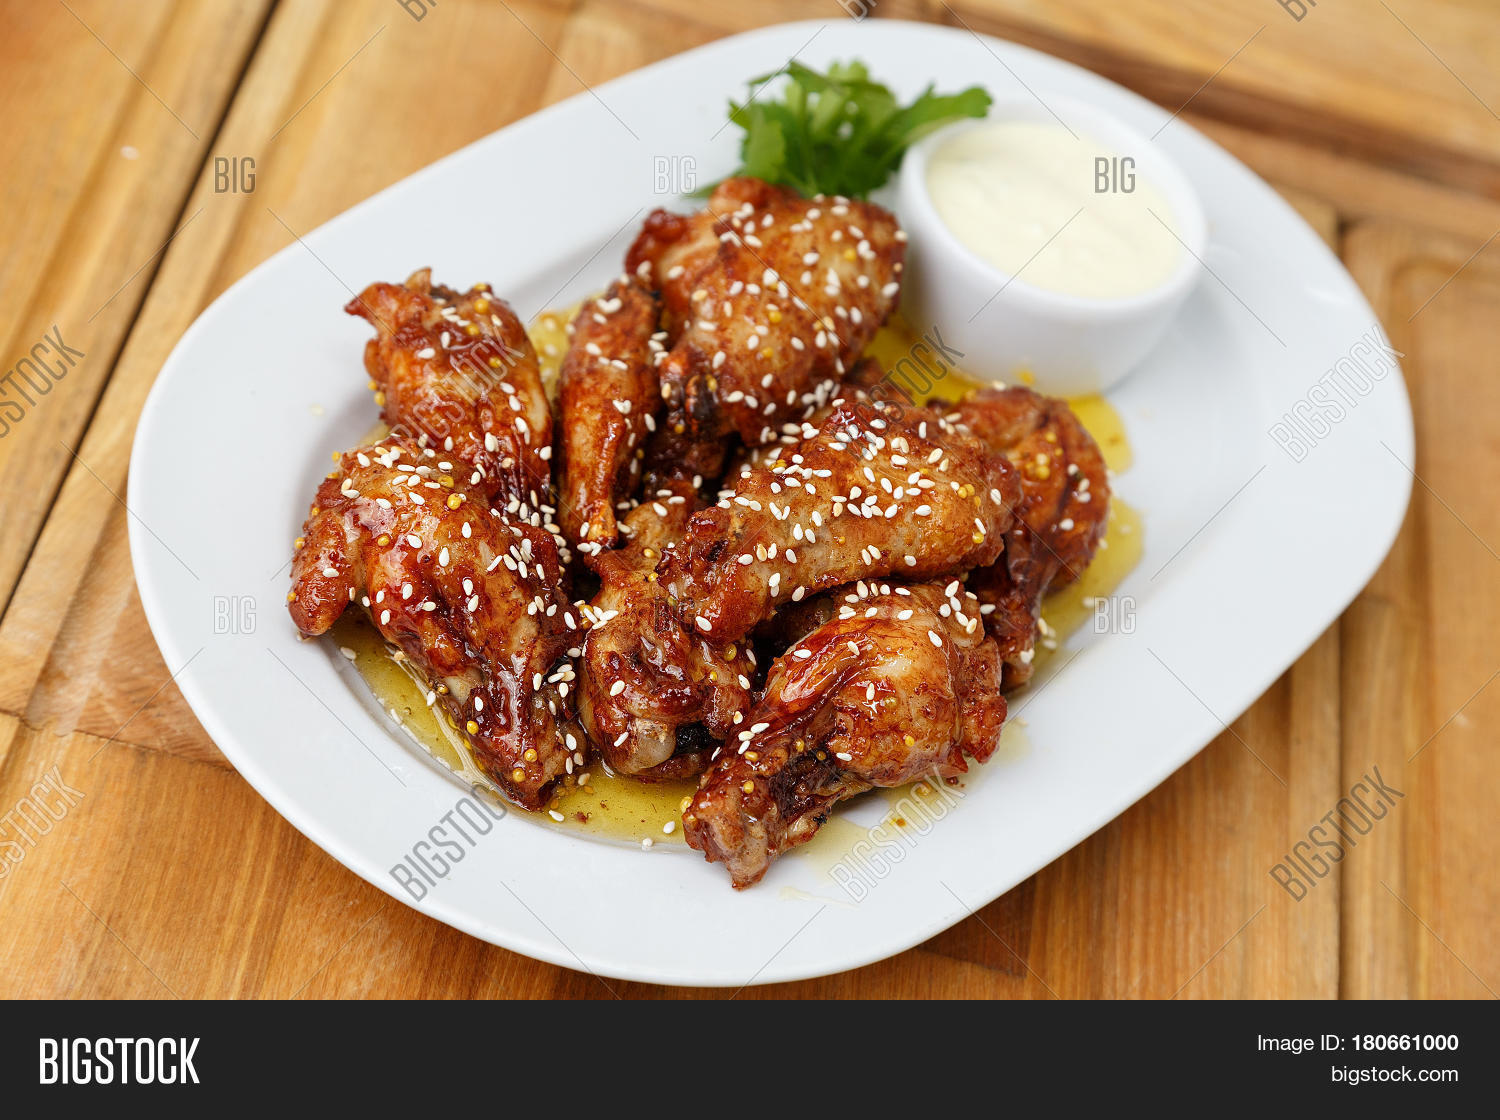 Fried chicken wings mayonnaise image photo bigstock for Table 52 fried chicken recipe